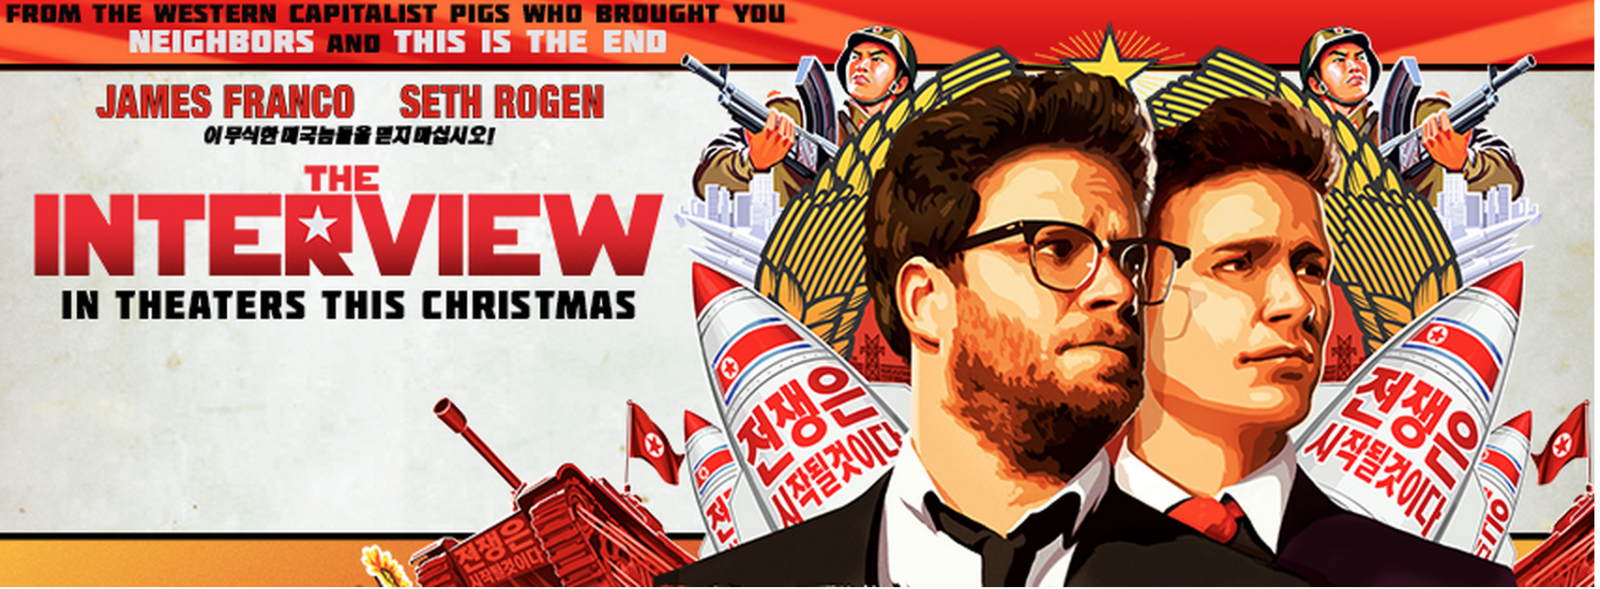 The Interview Film Led to North Korea Hacking Sony Pictures